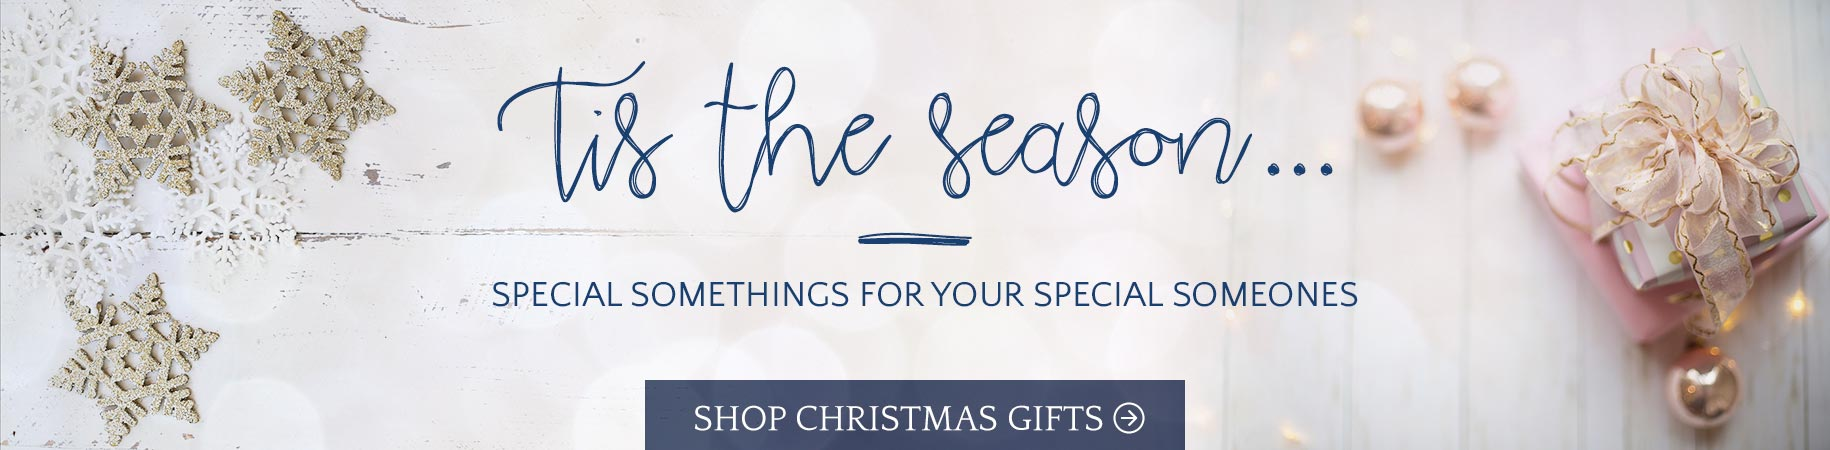 Shop Christmas Gifts At Harringtons Pharmacy